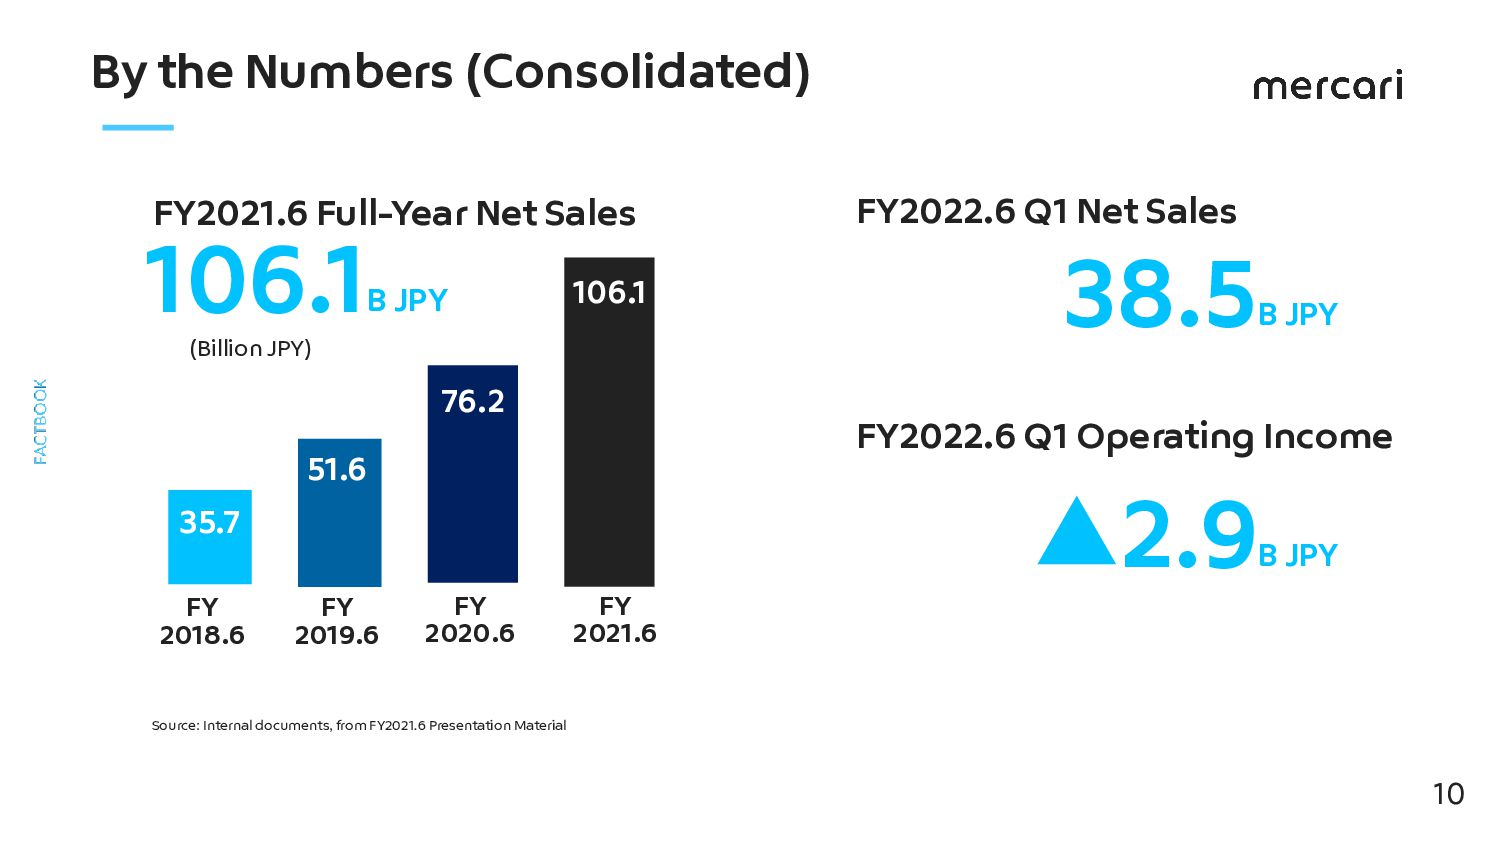 By the Numbers (FY2021.6 Consolidated/Full Year...